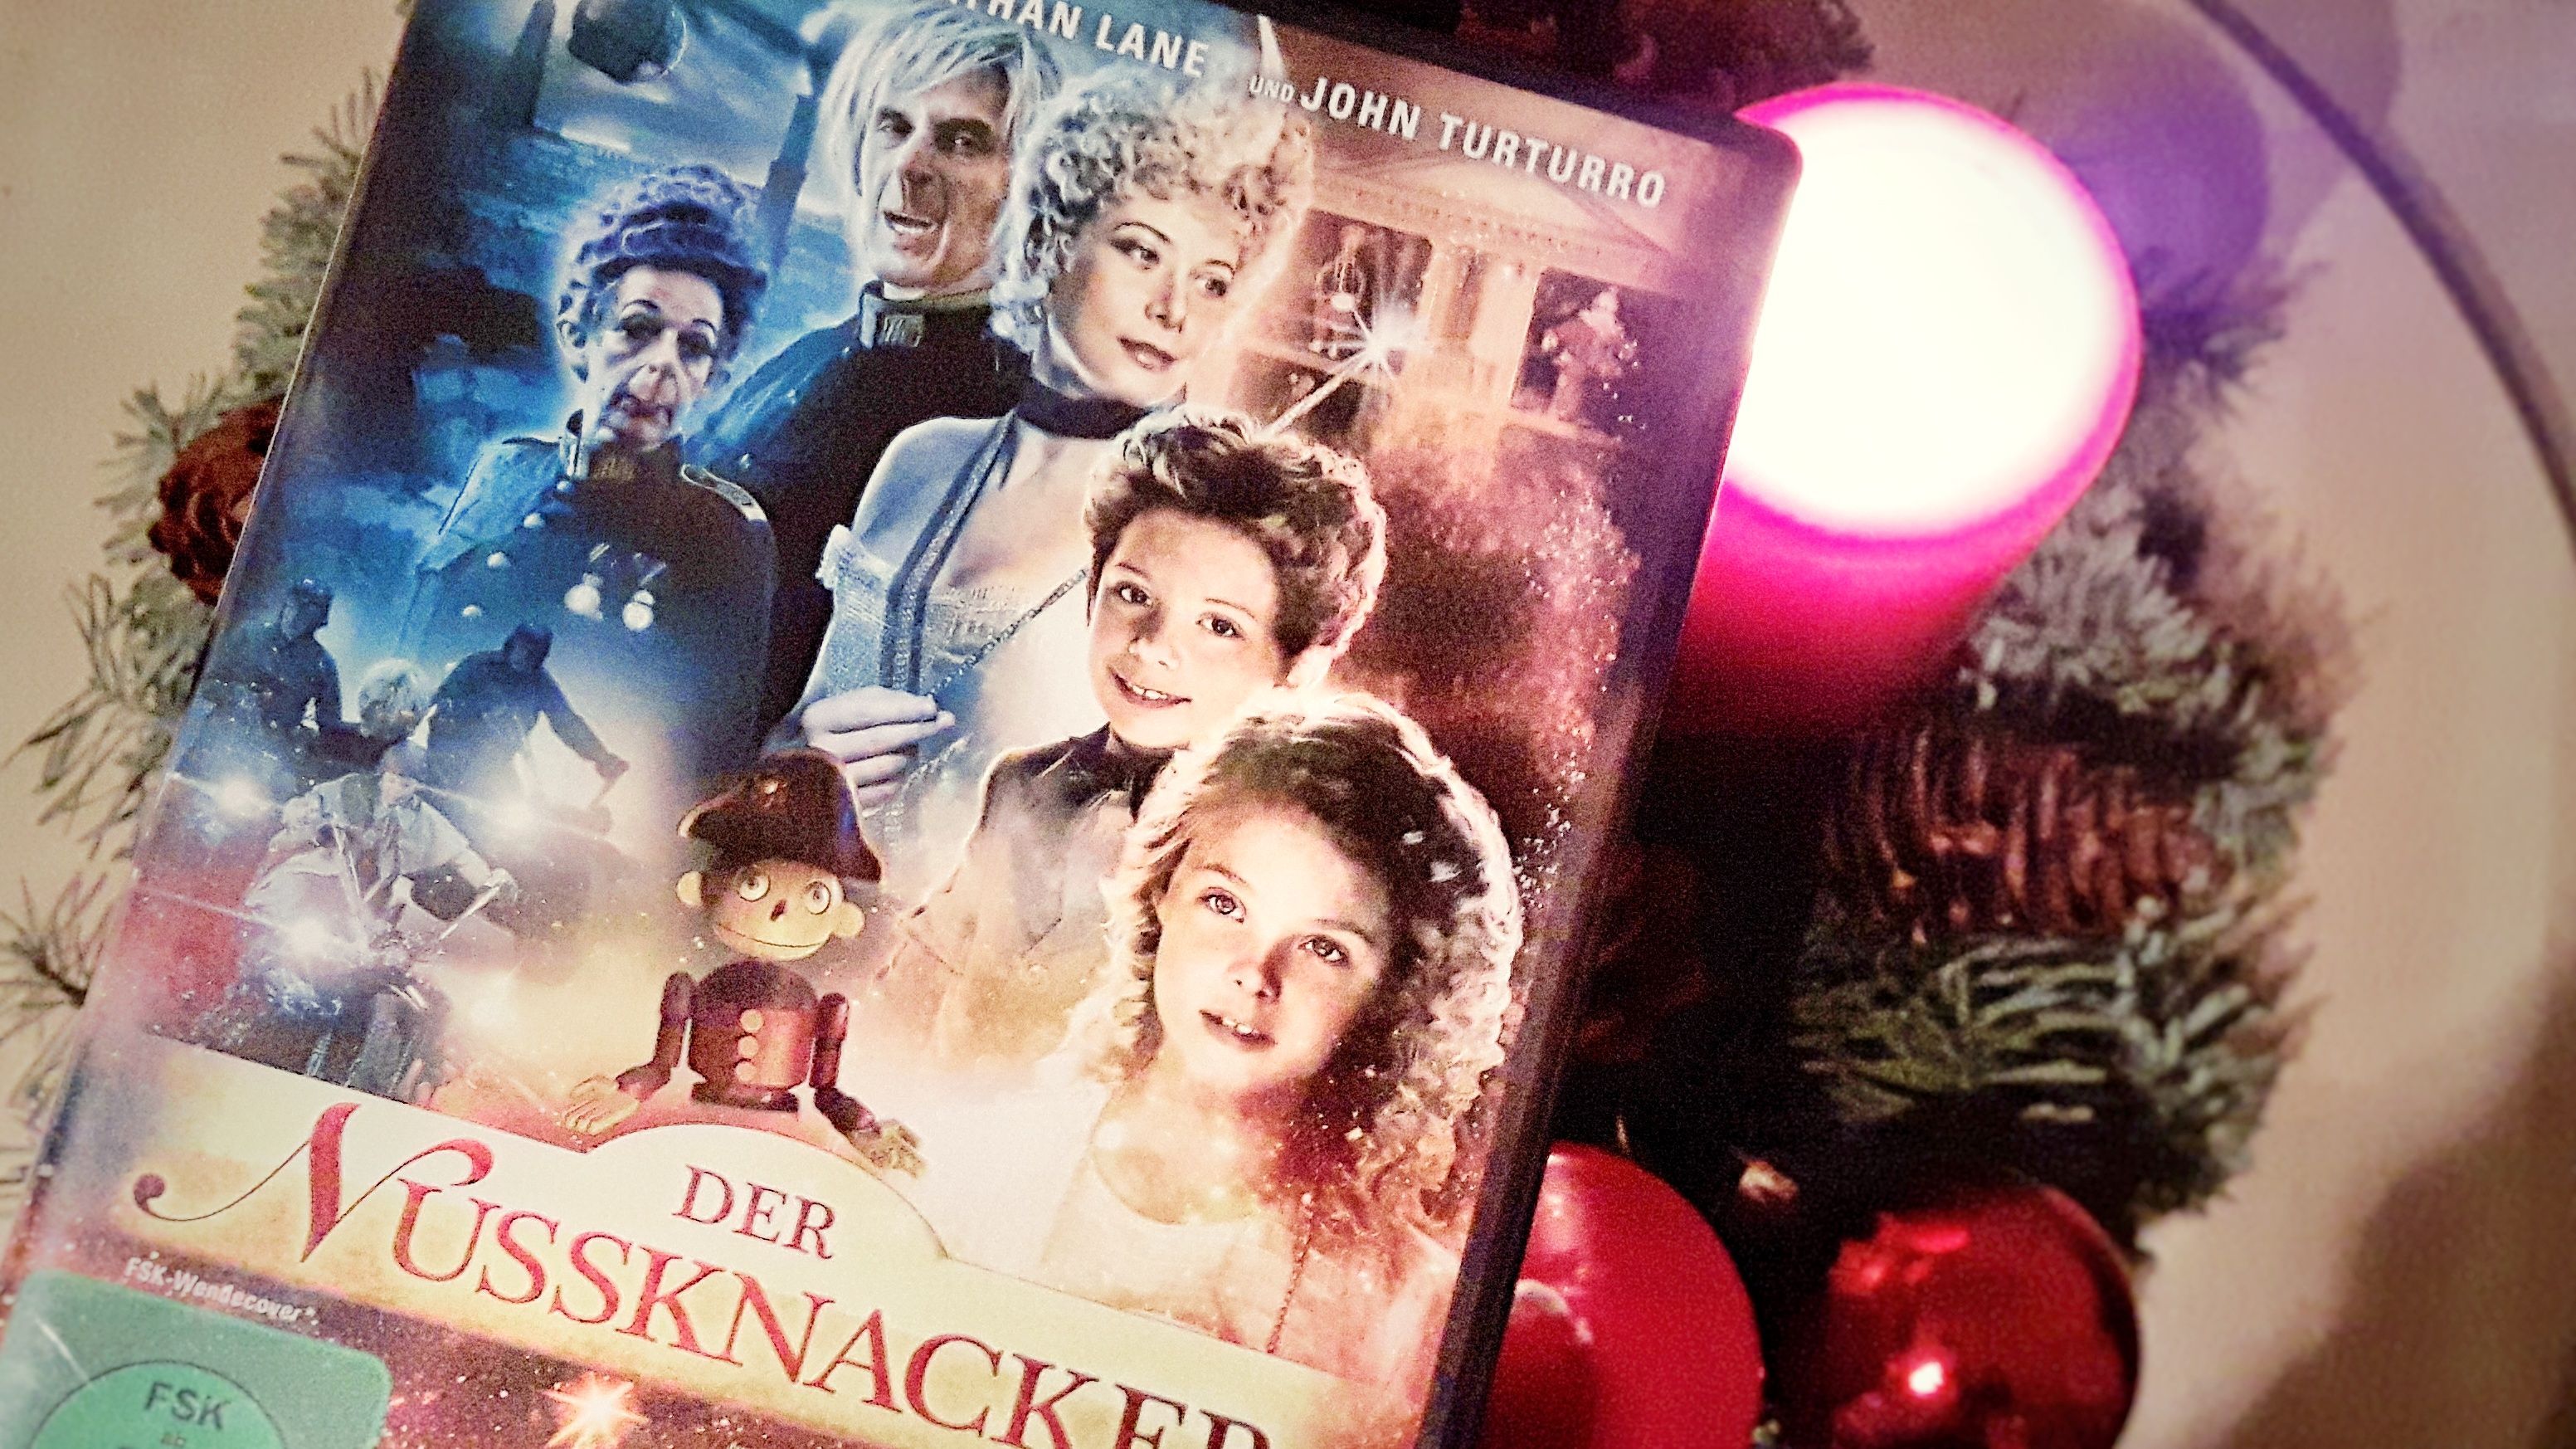 Nazis unterm Christbaum: Nutcracker – The Untold Story